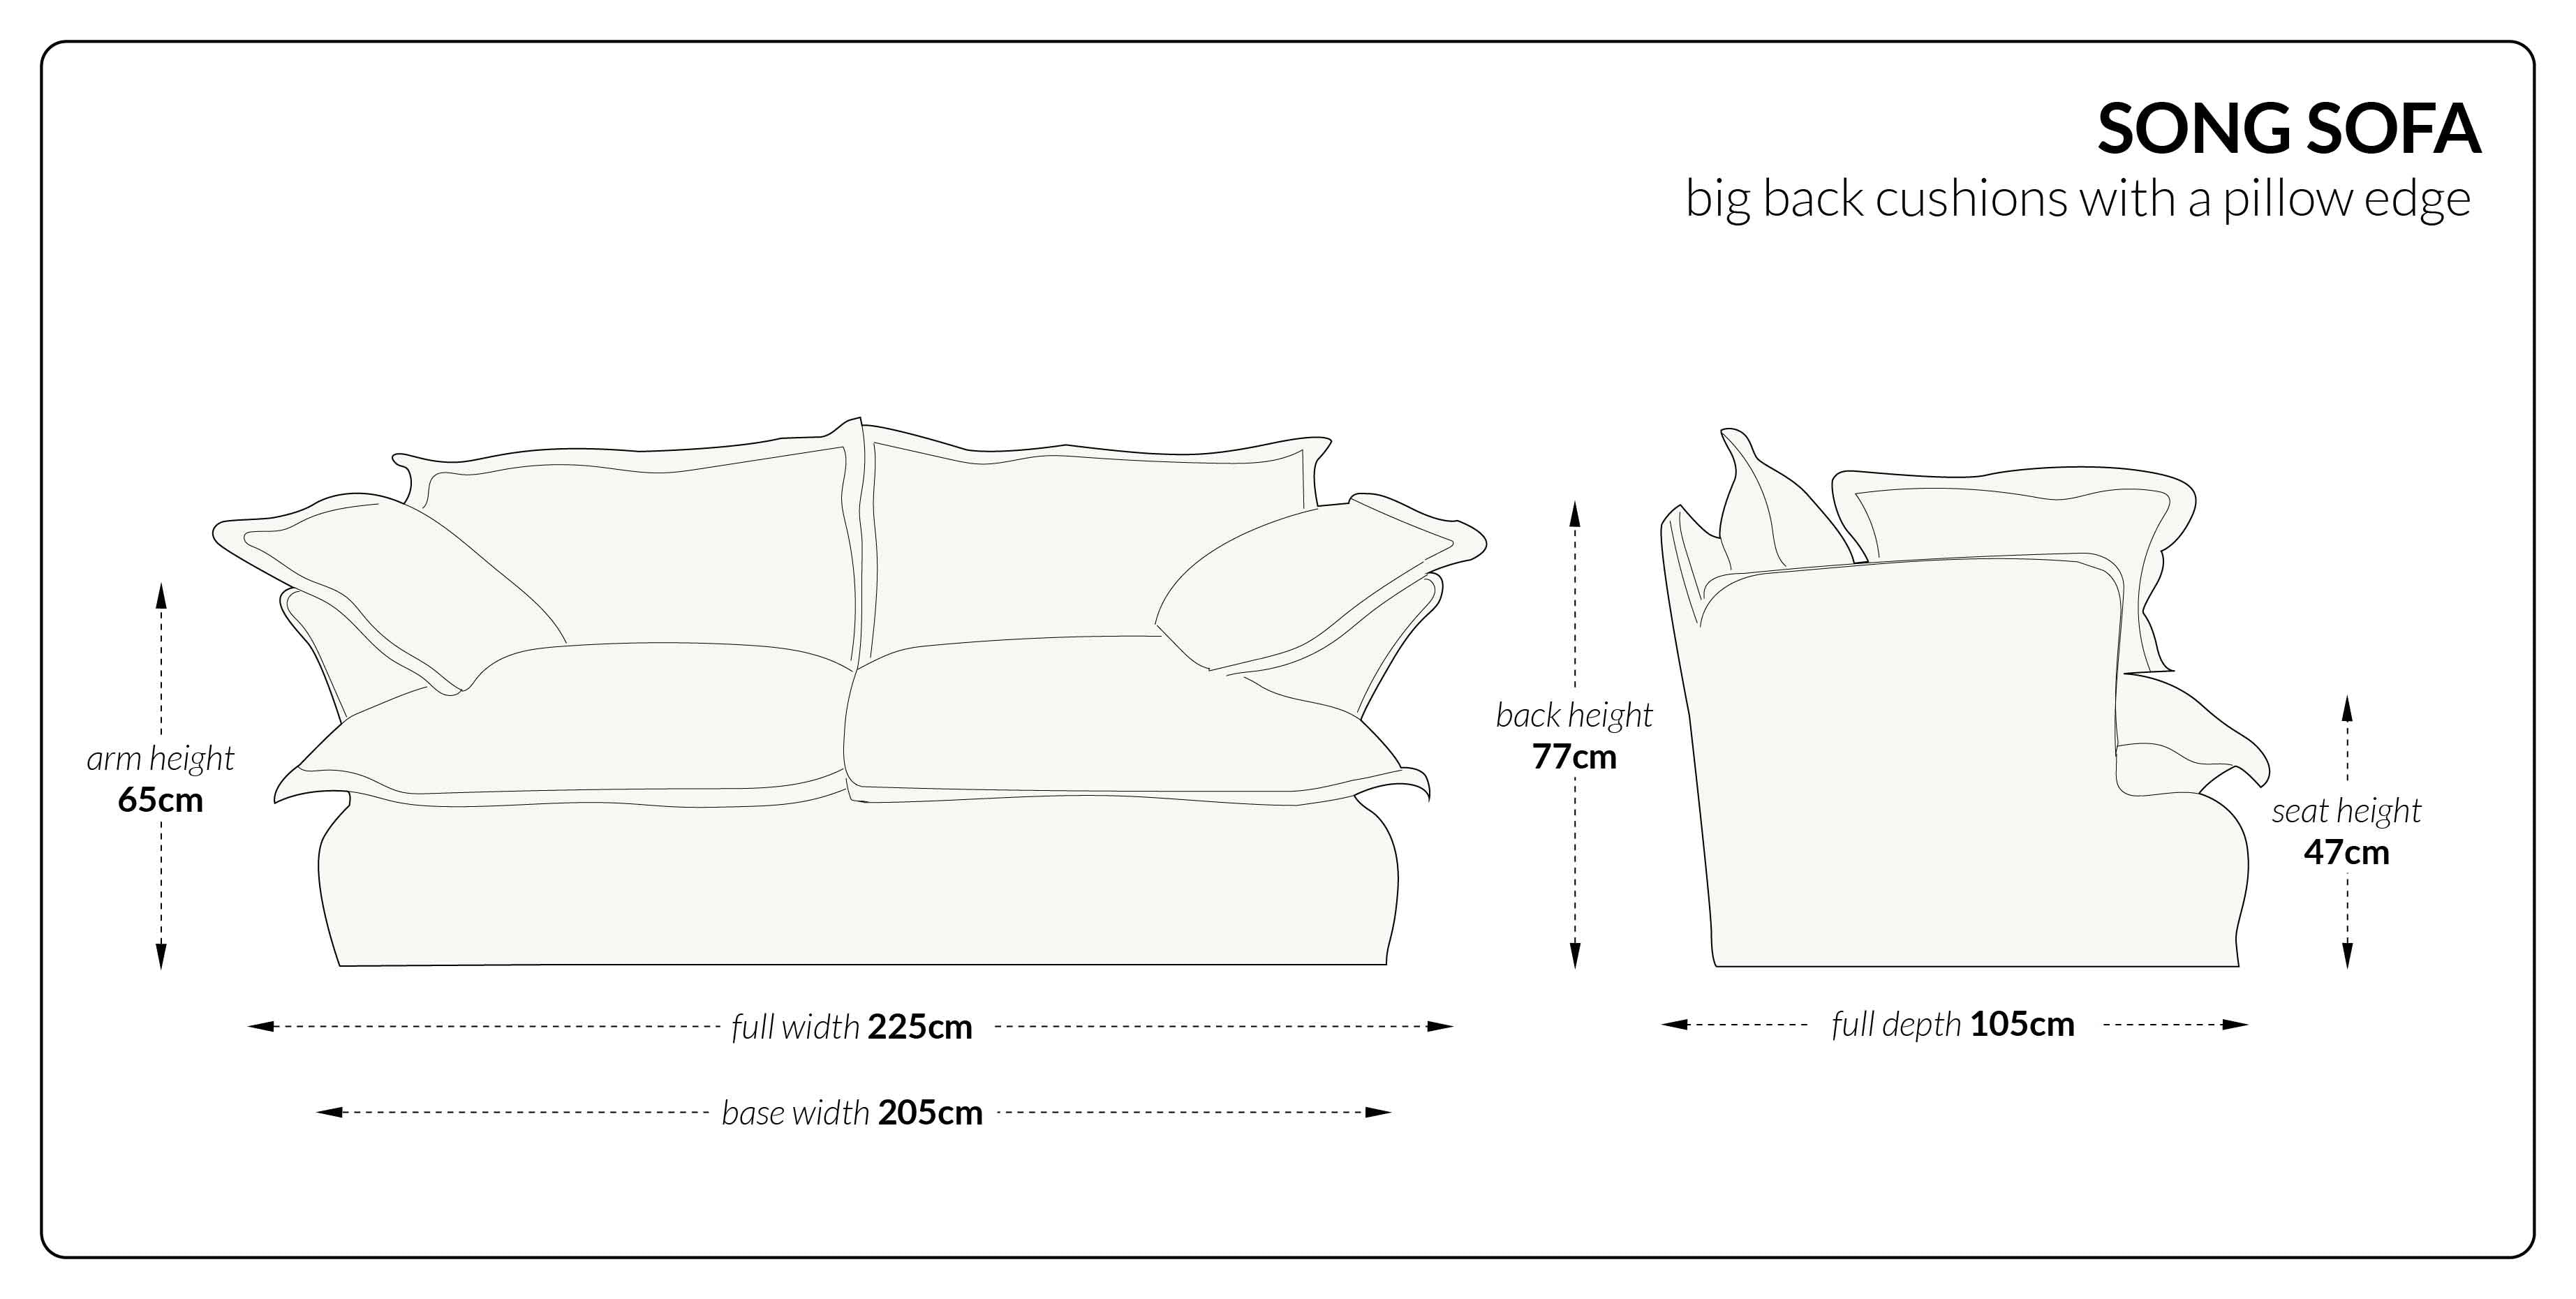 Song Sofa big